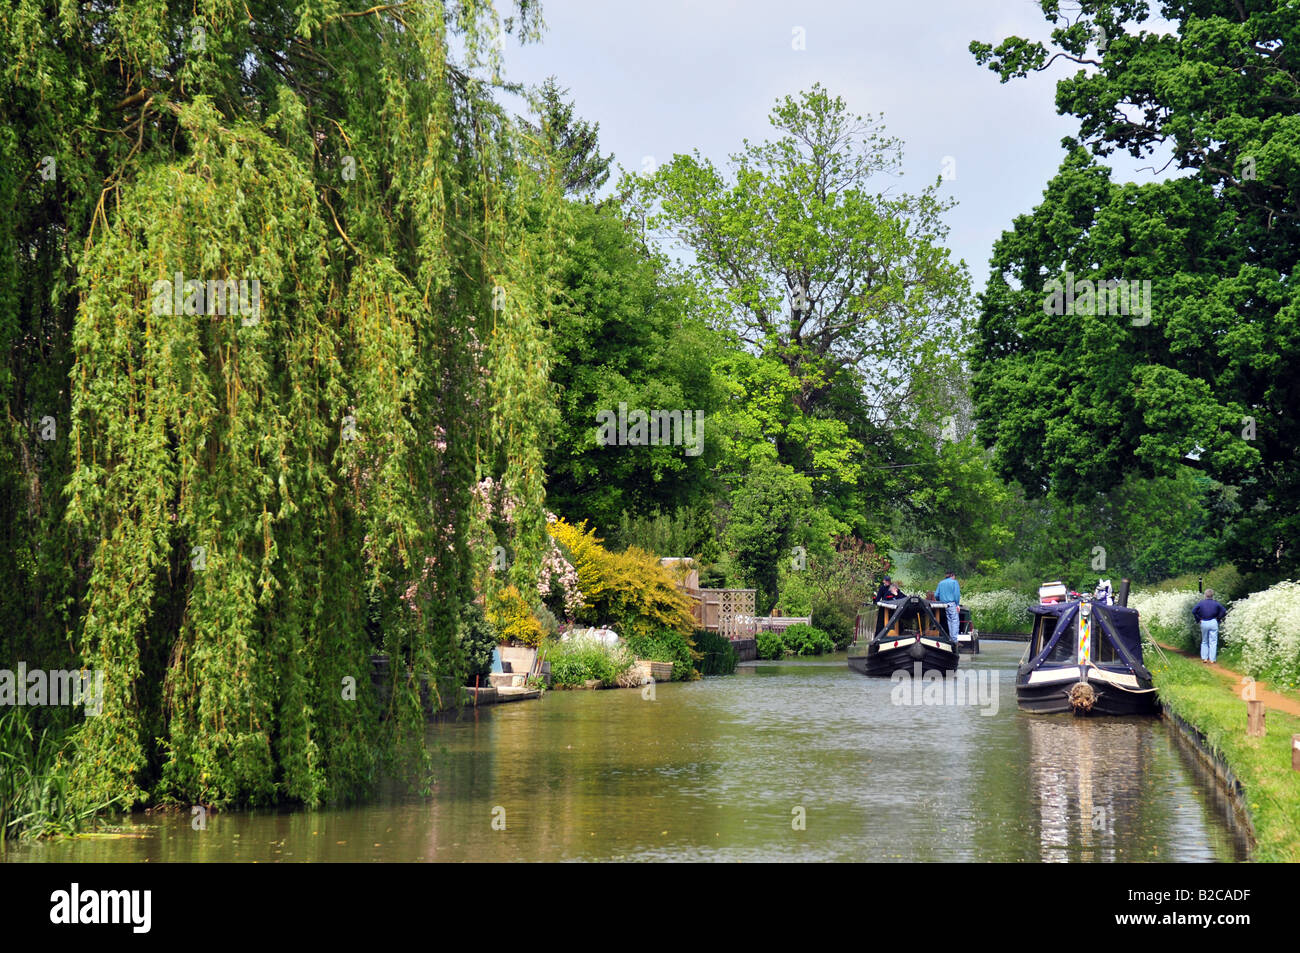 Narrowboats on the Oxford canal at Cropredy, Oxfordshire - Stock Image